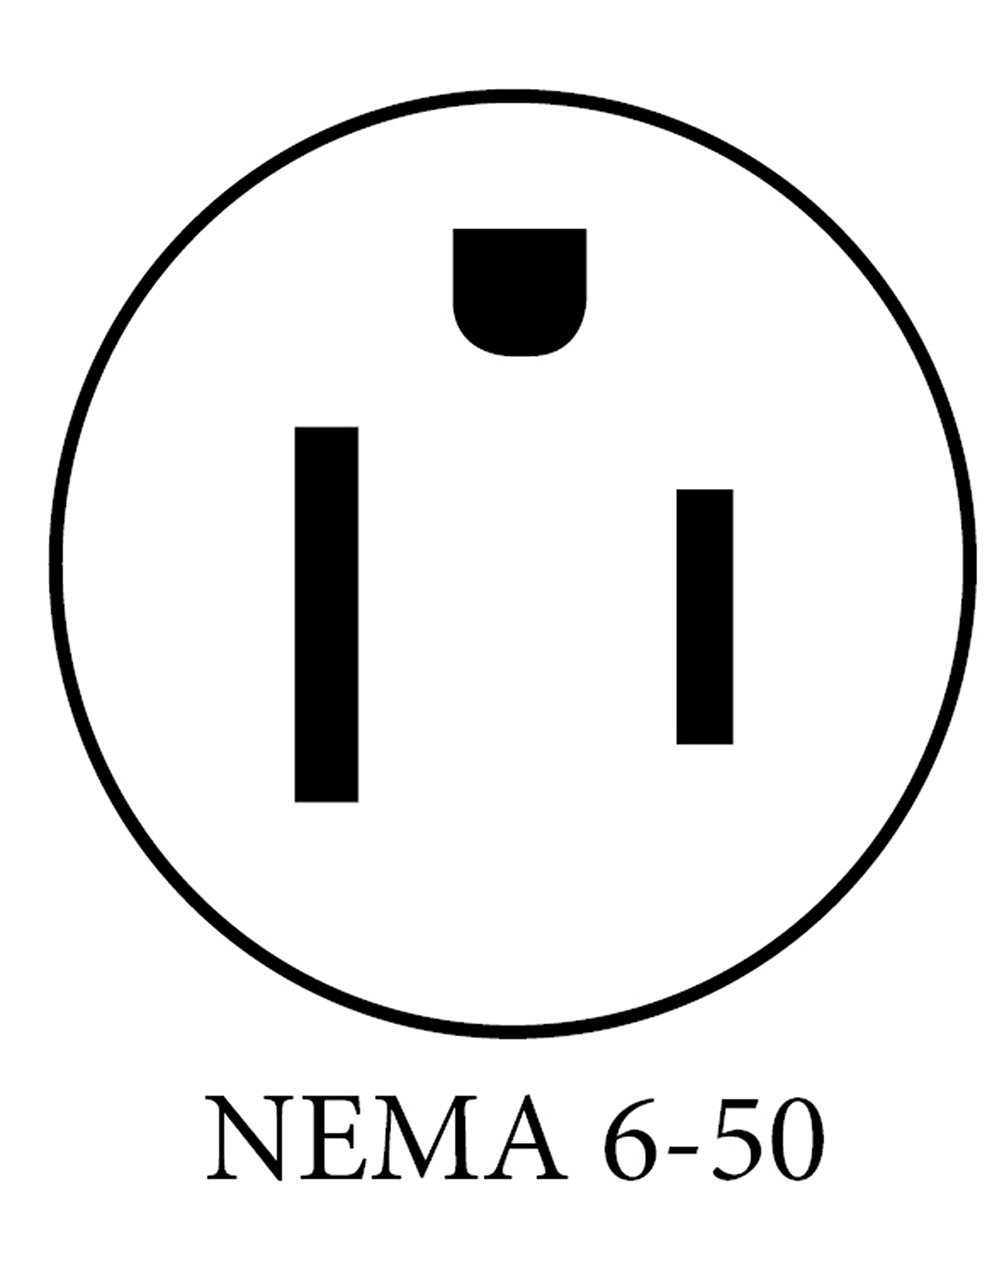 NEMA 6 50 PLUG DIAGRAM wupside down what plugs are available on ev charging stations? 32 amp plug wiring diagram at nearapp.co